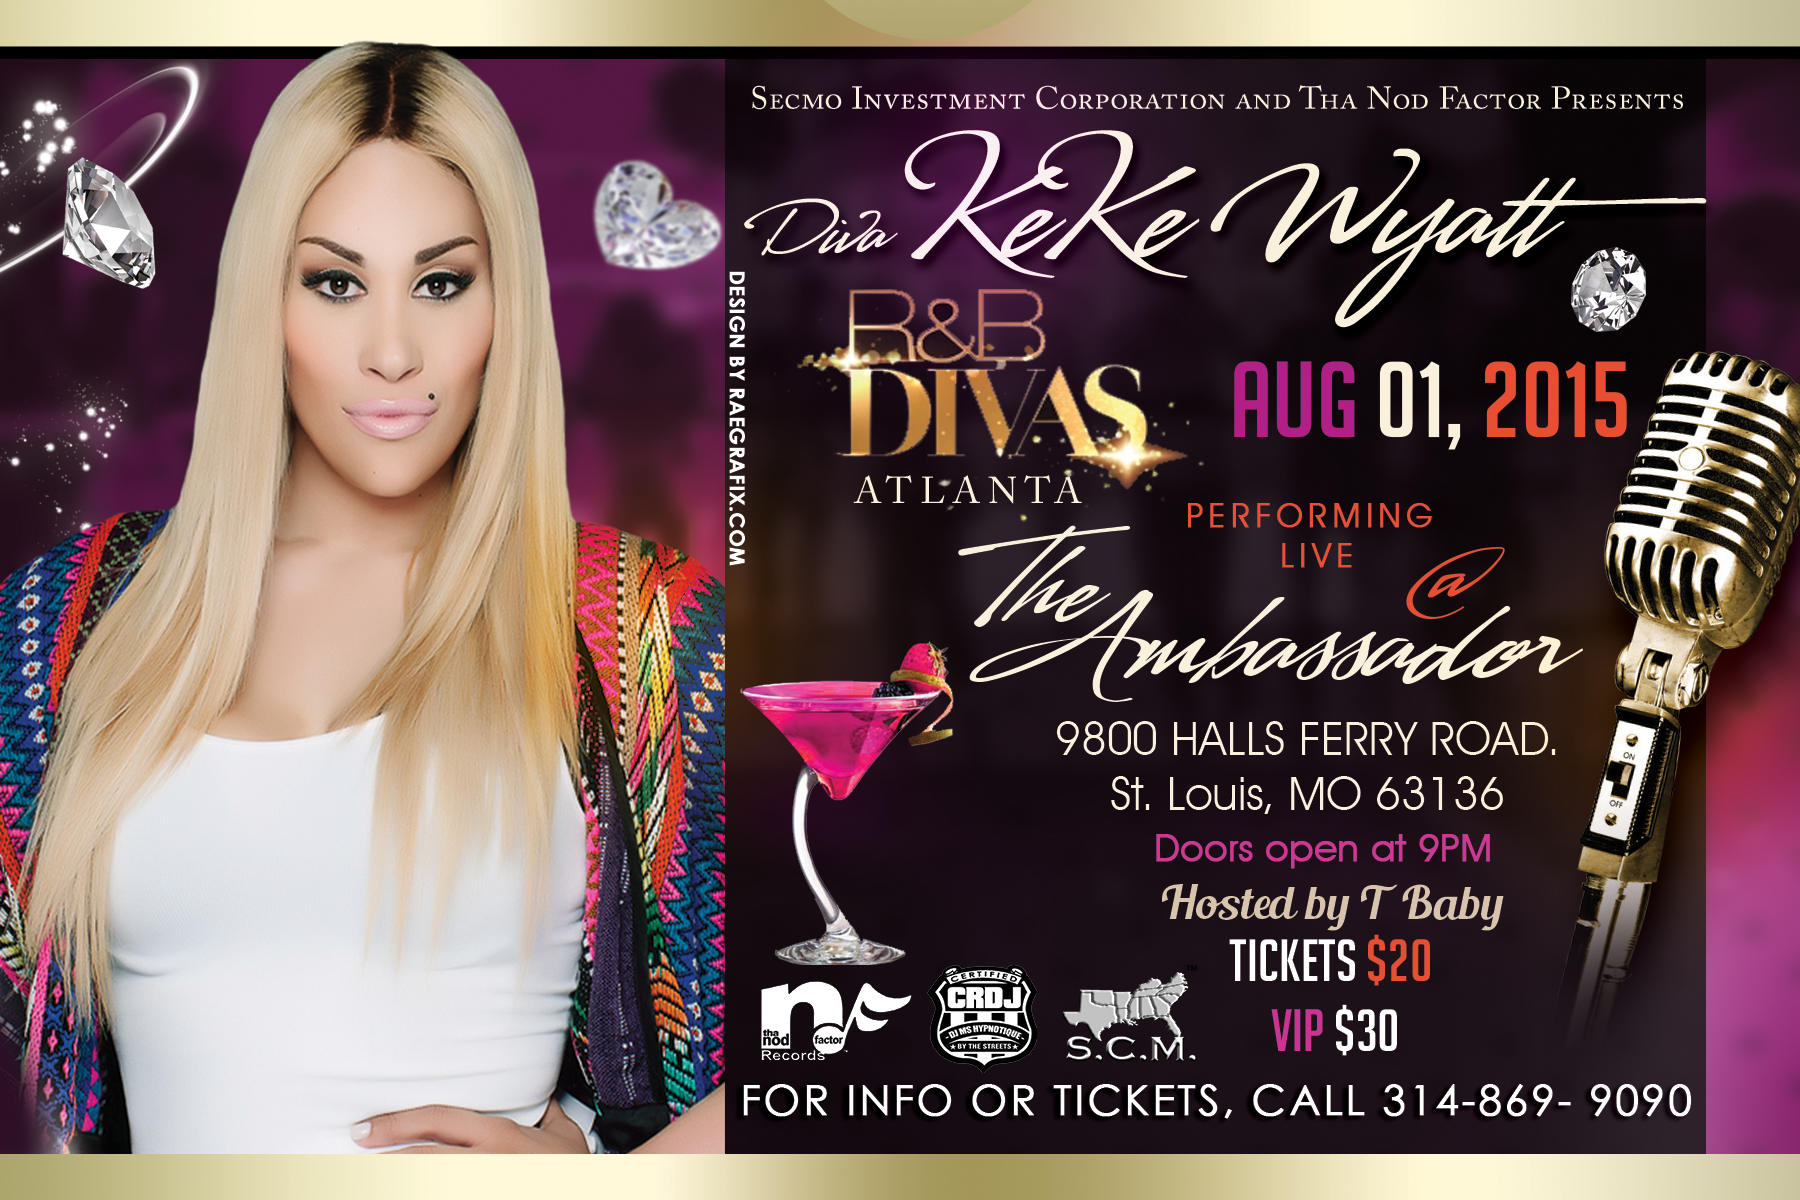 Keke Wyatt comes to St. Louis for Grown and Sexy Event.